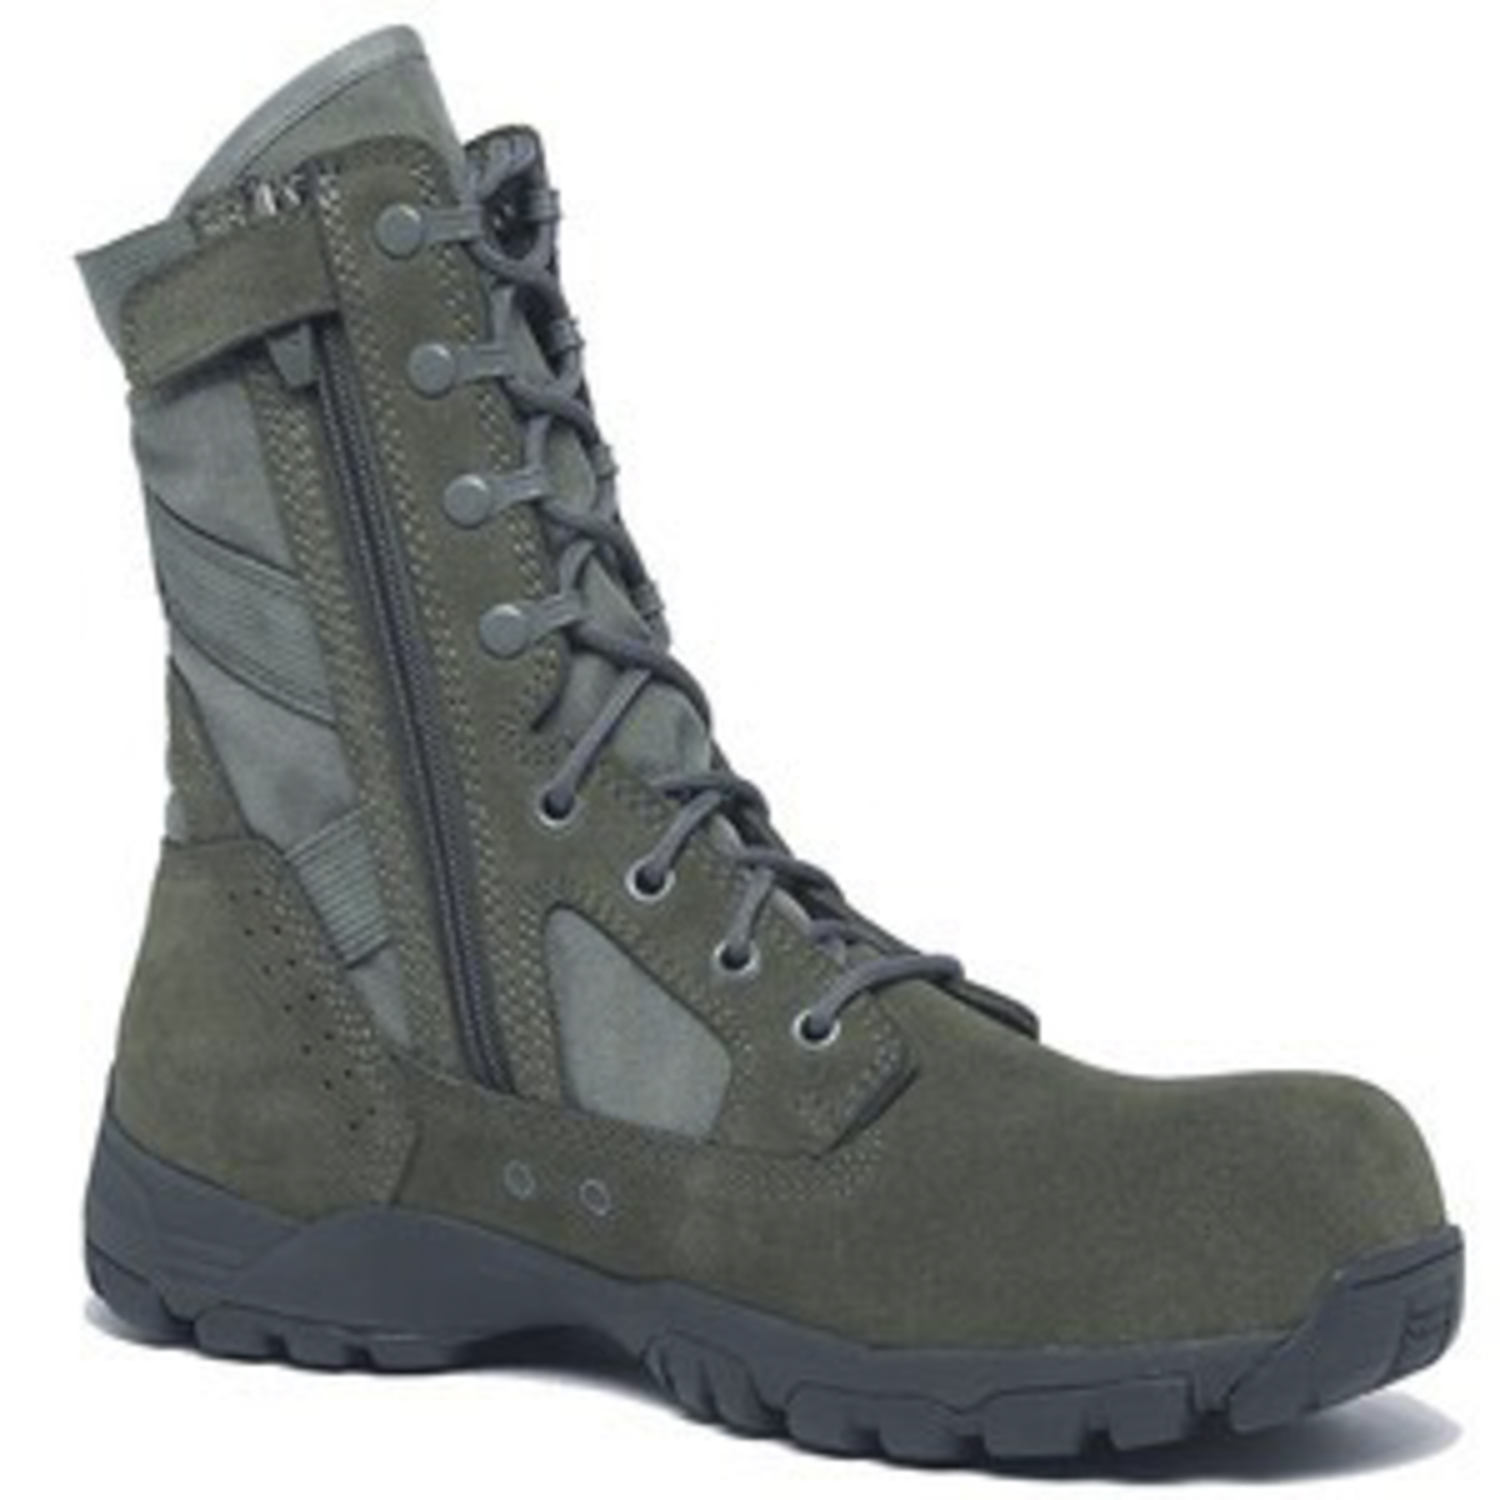 Belleville Flyweight Composite Toe Boots